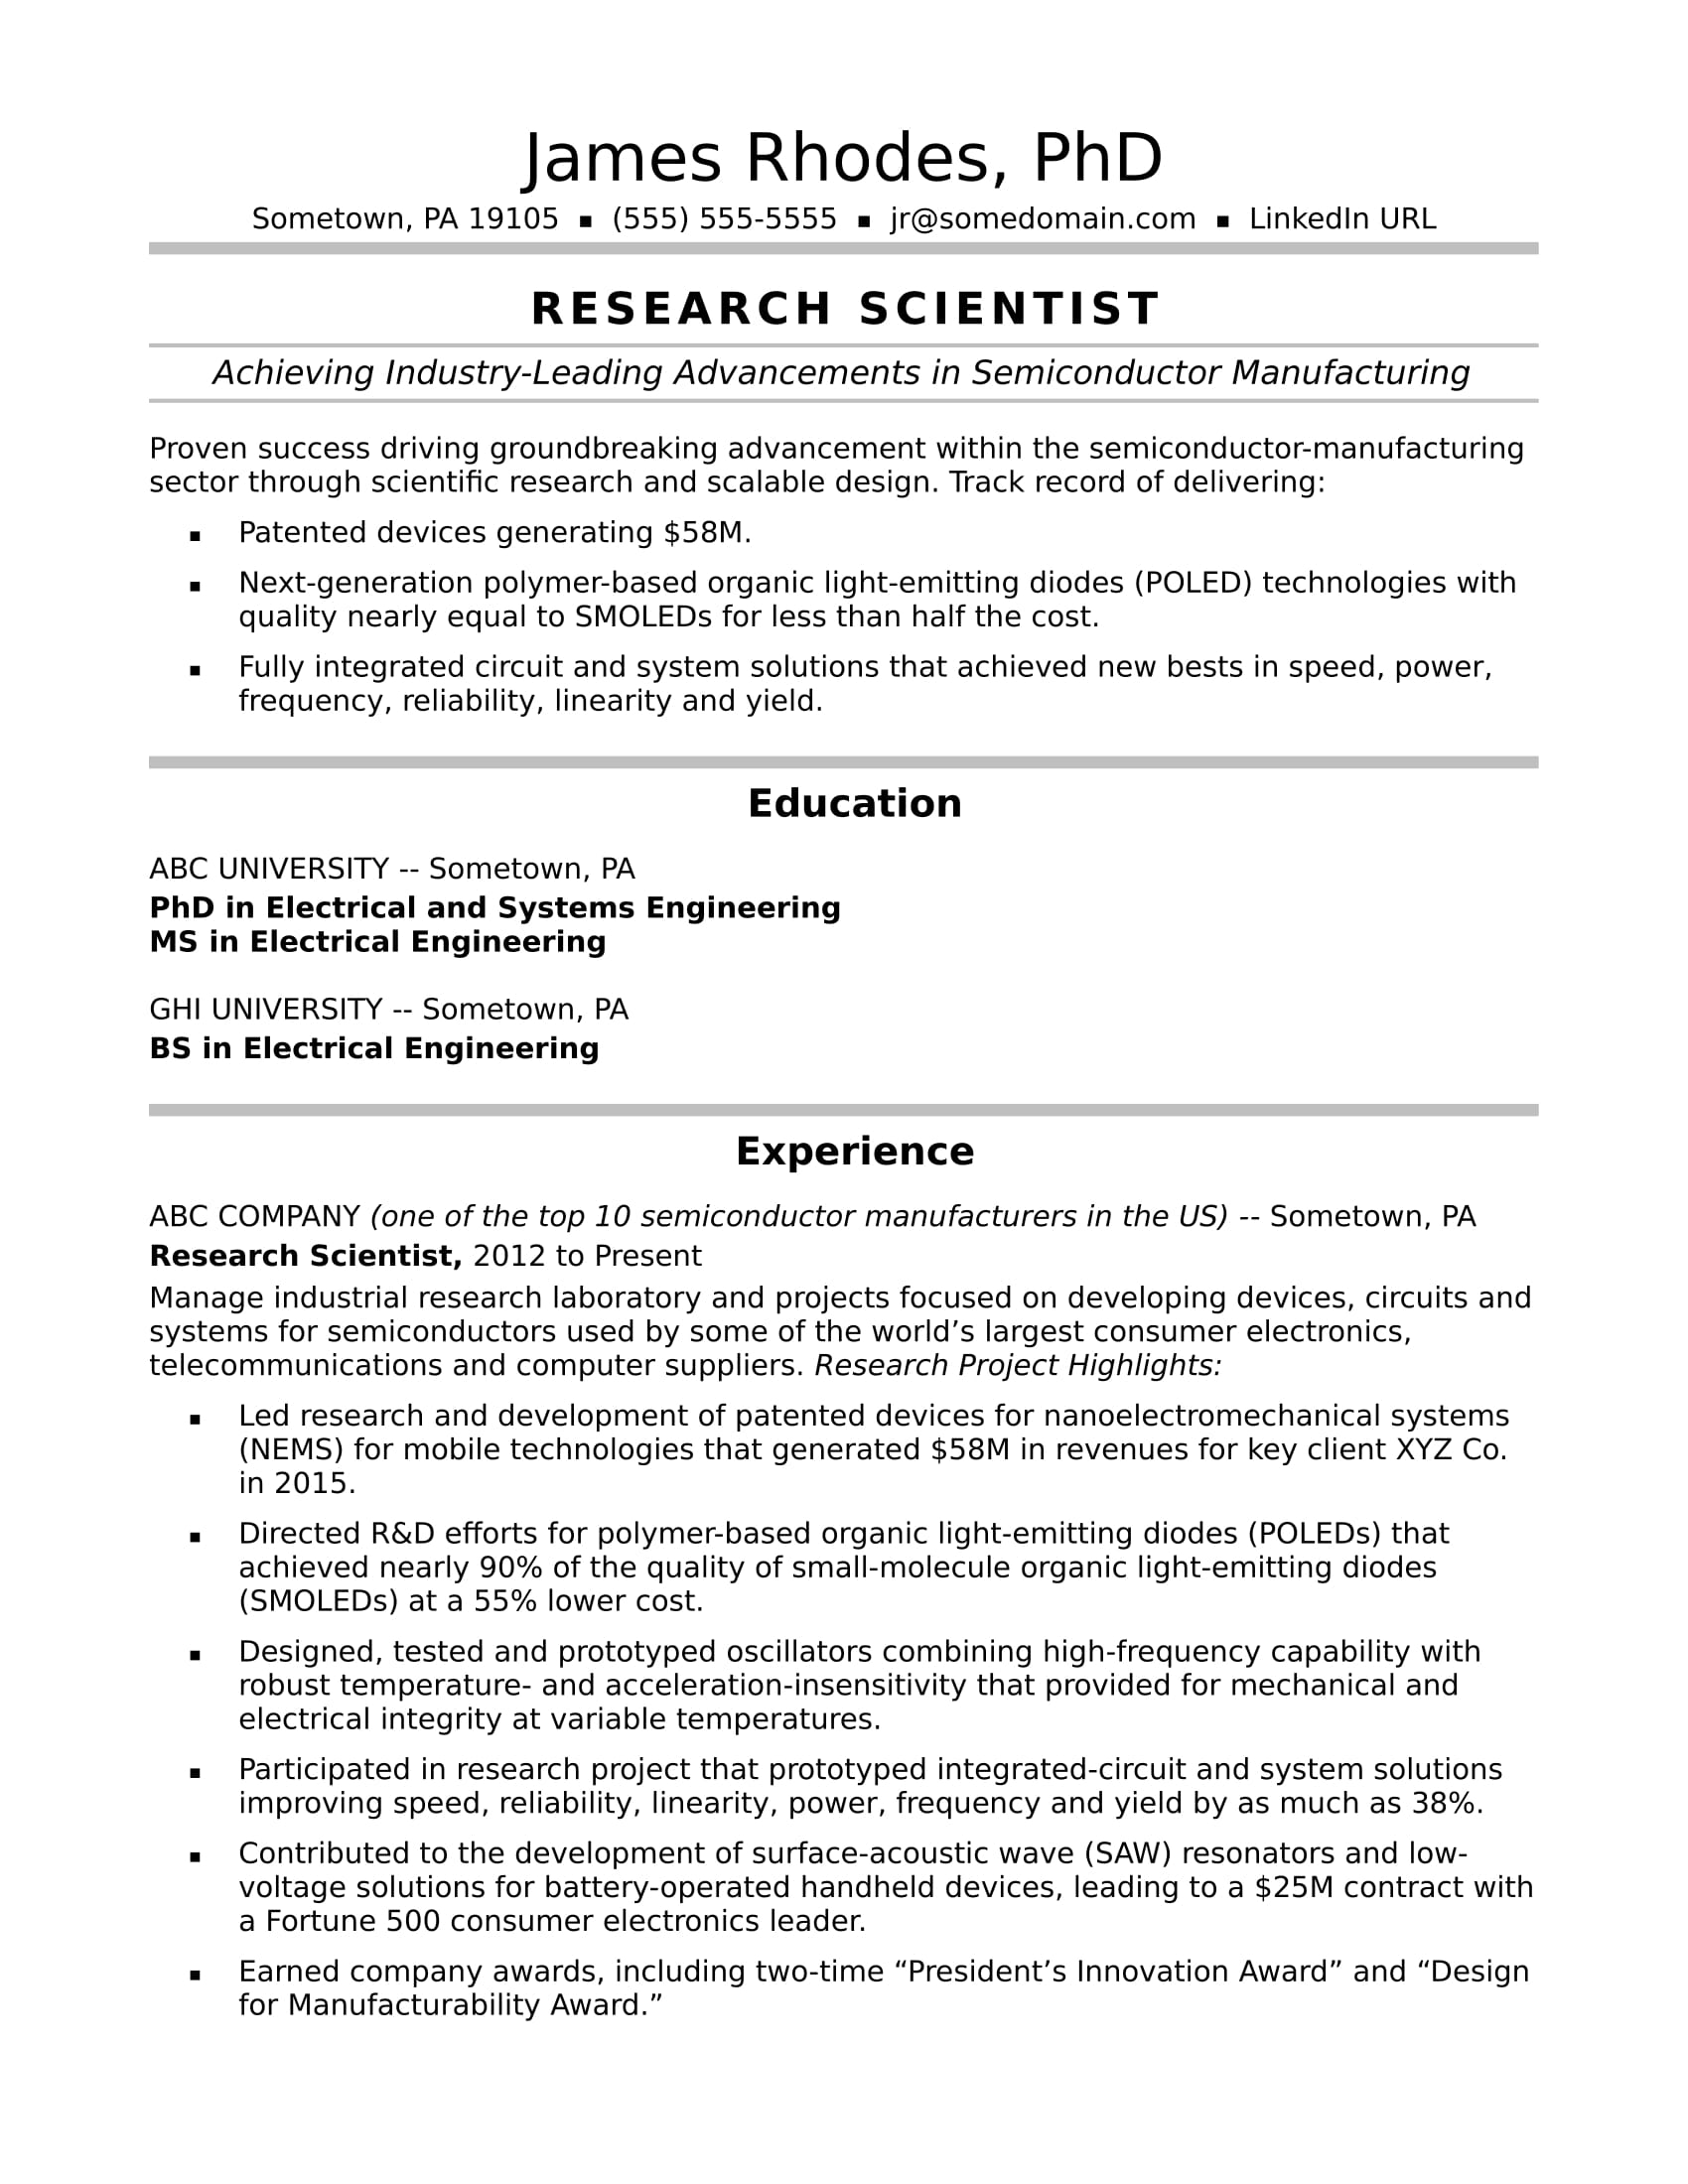 Research scientist resume sample monster sample resume for a research scientist yelopaper Image collections